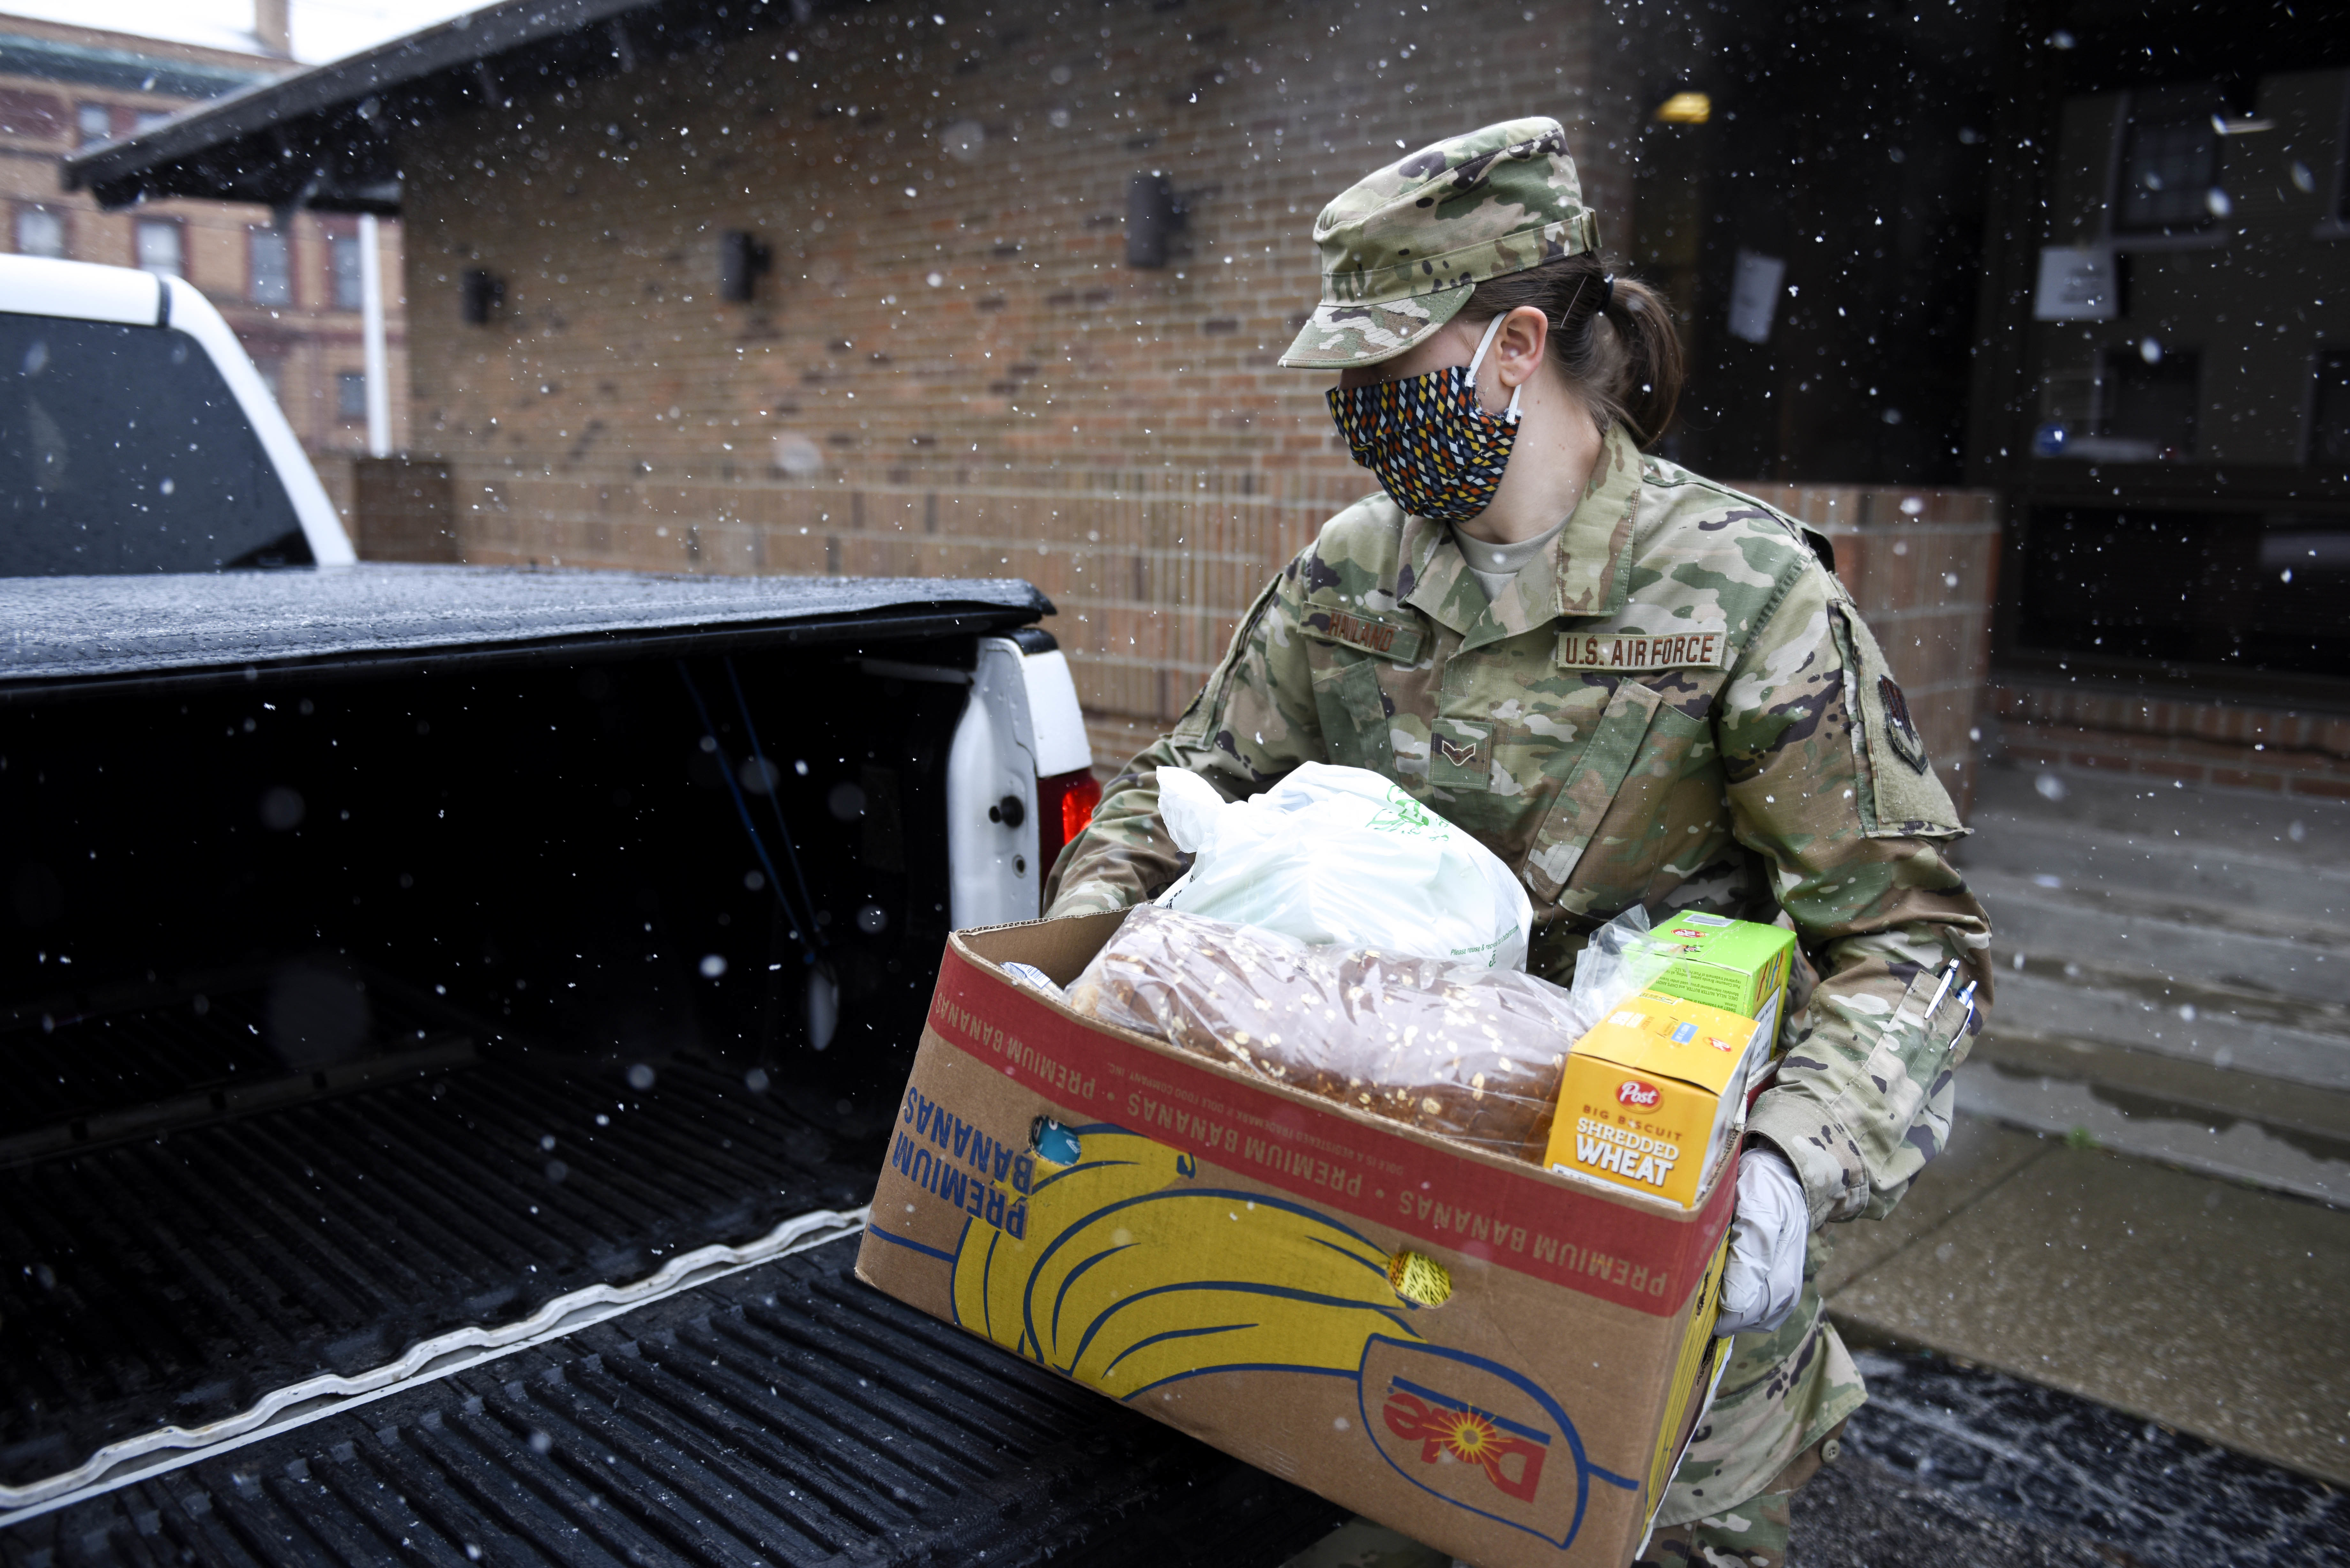 FEmale soldier loads box into back of a truck in the snow.